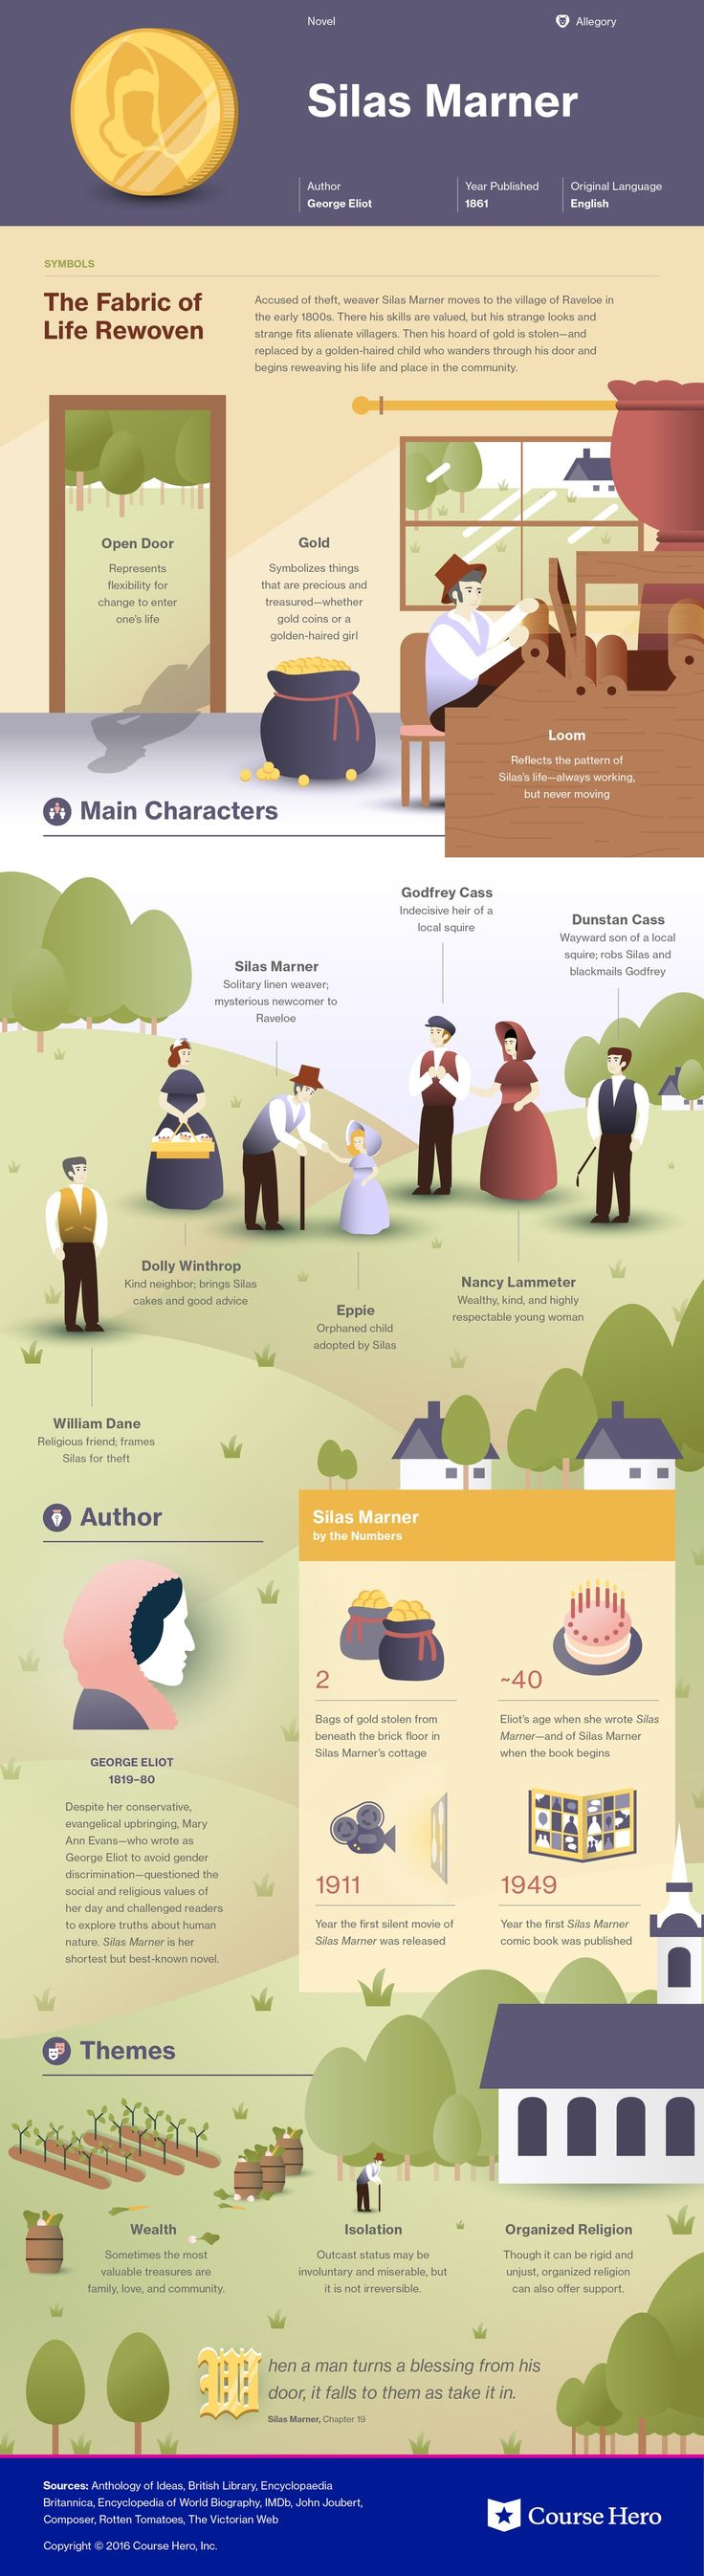 best silas marner ideas bbc a book of jude and silas marner infographic course hero